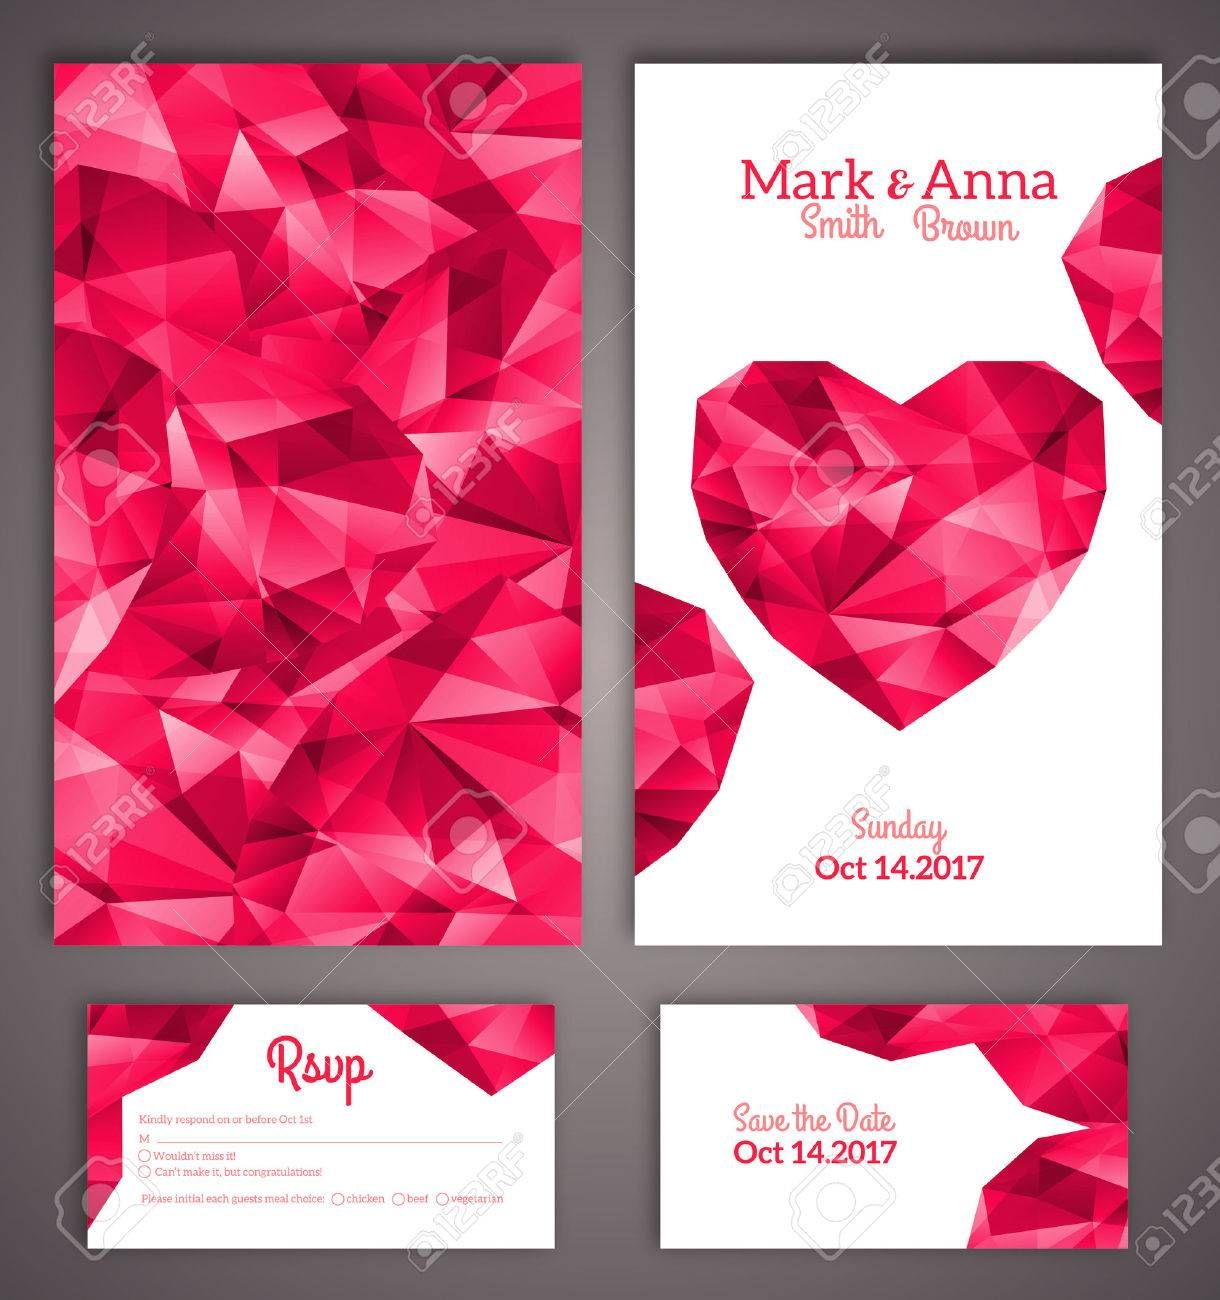 Wedding Invitation Cards Template With Abstract Polygonal Heart Vector Illustration Ill Wedding Cards Wedding Invitation Card Template Wedding Card Templates